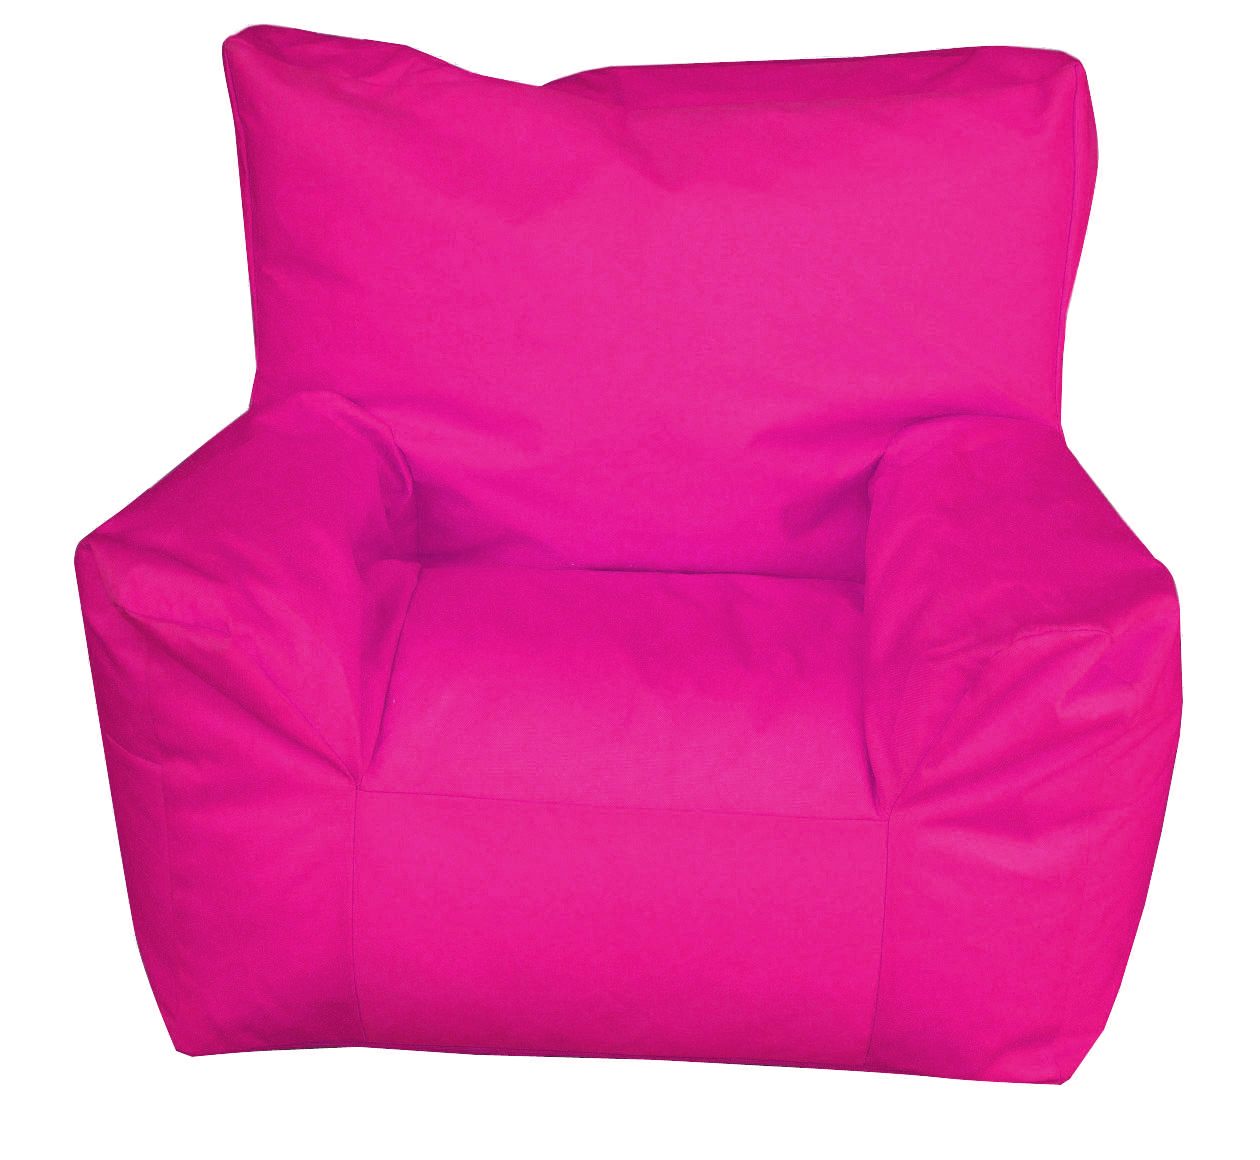 pouf fauteuil enfant fuchsia achat poufs fauteuils. Black Bedroom Furniture Sets. Home Design Ideas